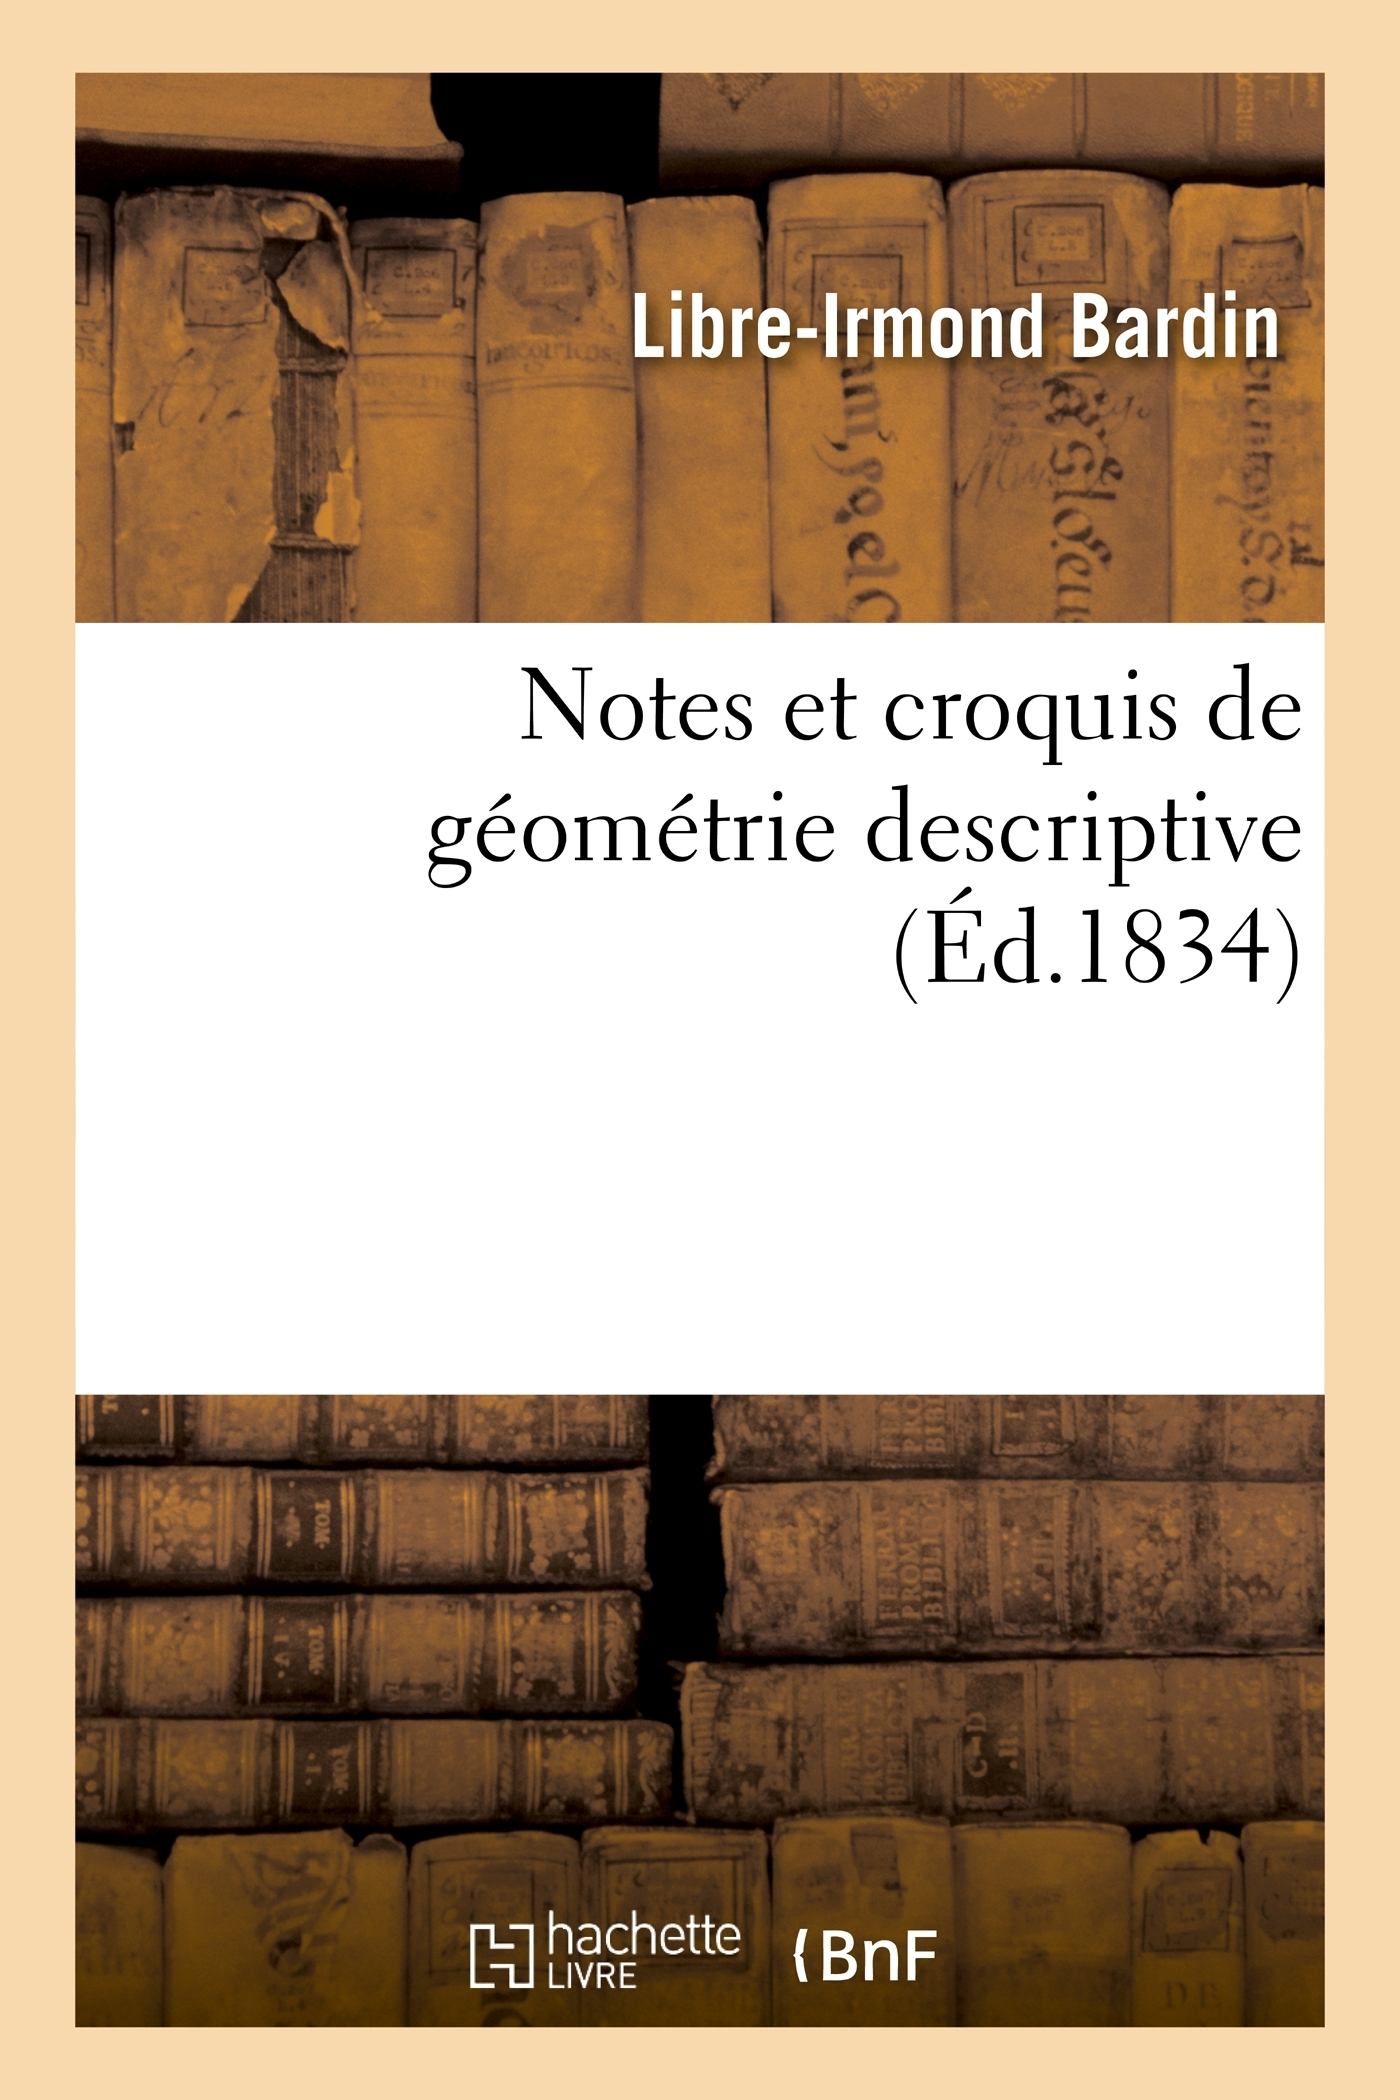 NOTES ET CROQUIS DE GEOMETRIE DESCRIPTIVE